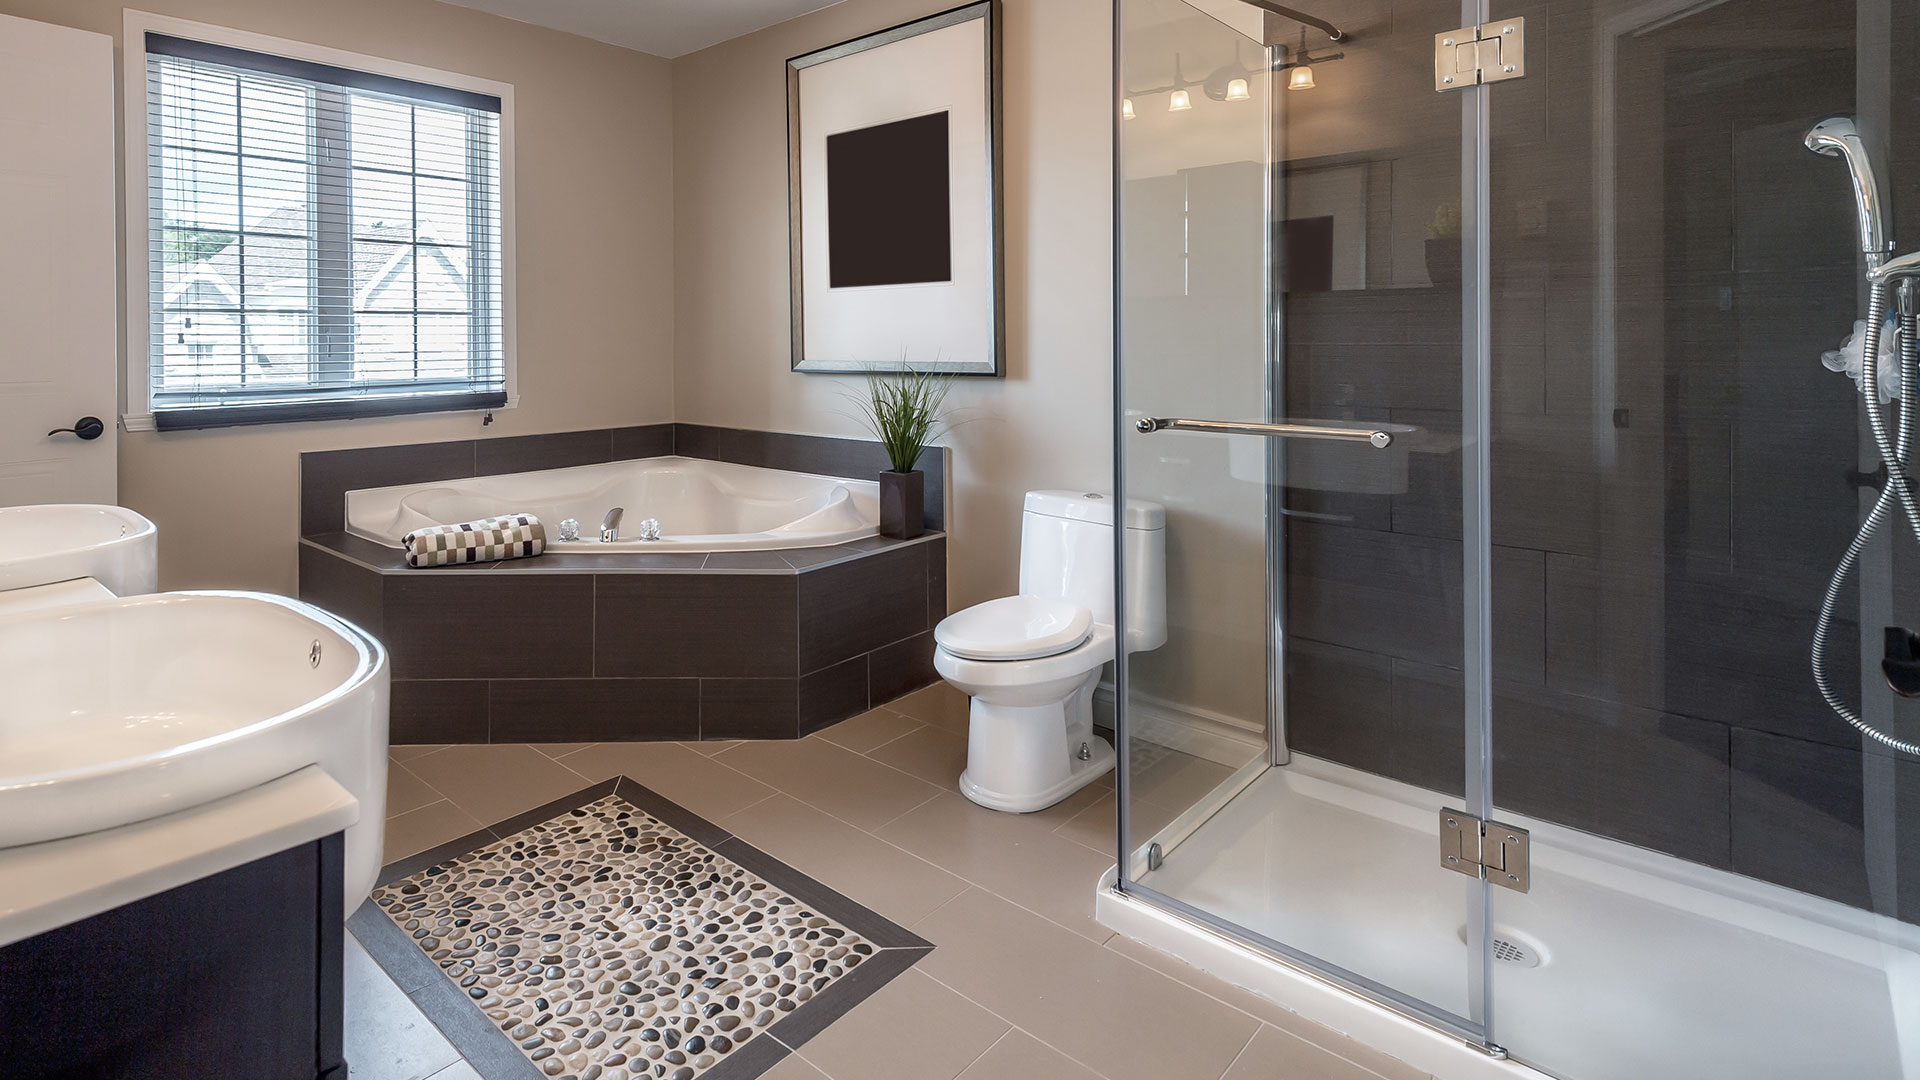 Remodeling | Boise Bathroom Remodeling, Kitchen Remodeling And Drywall  Repair